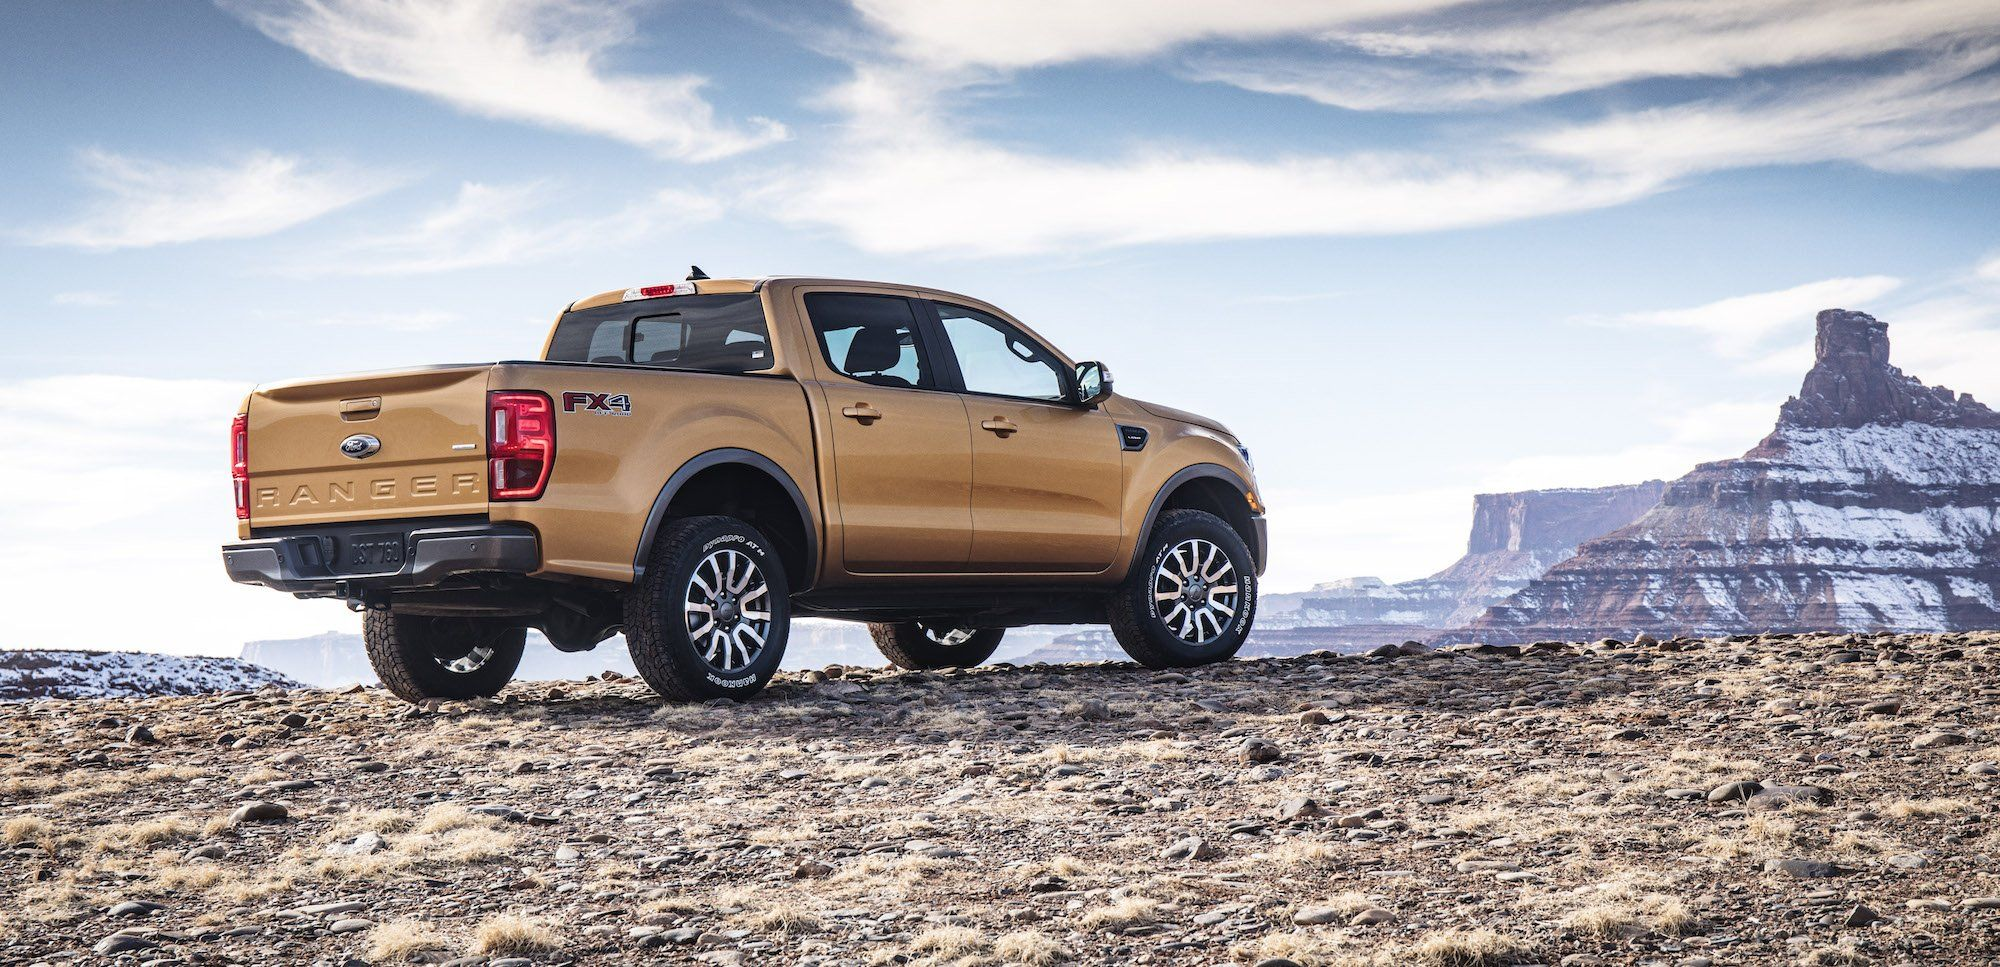 This Is The One The 2019 Ford Ranger In Absolute Black 2019